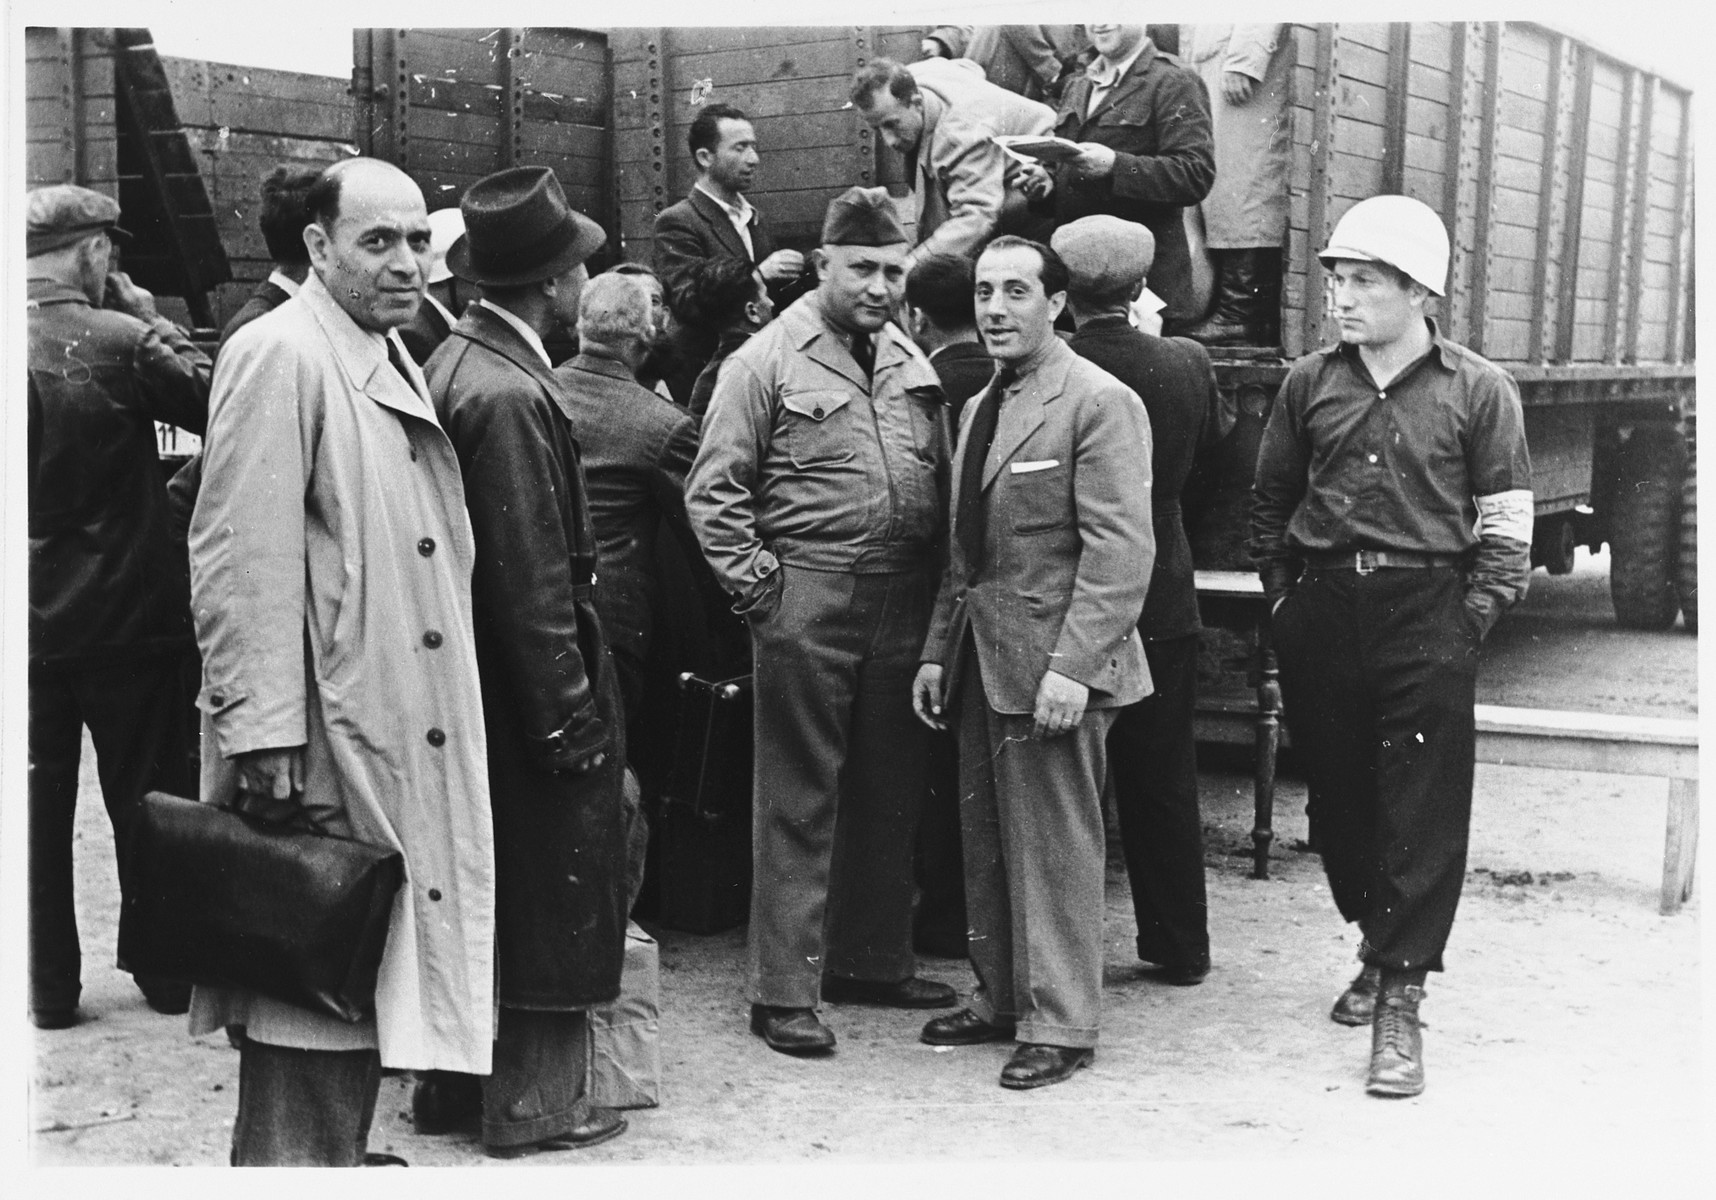 UNRRA camp director Harold Fishbein poses with other officials at the Schlachtensee displaced persons camp, where Jewish DPs are boarding large trucks.    Harold Fishbein is standing in the center (third from the right).